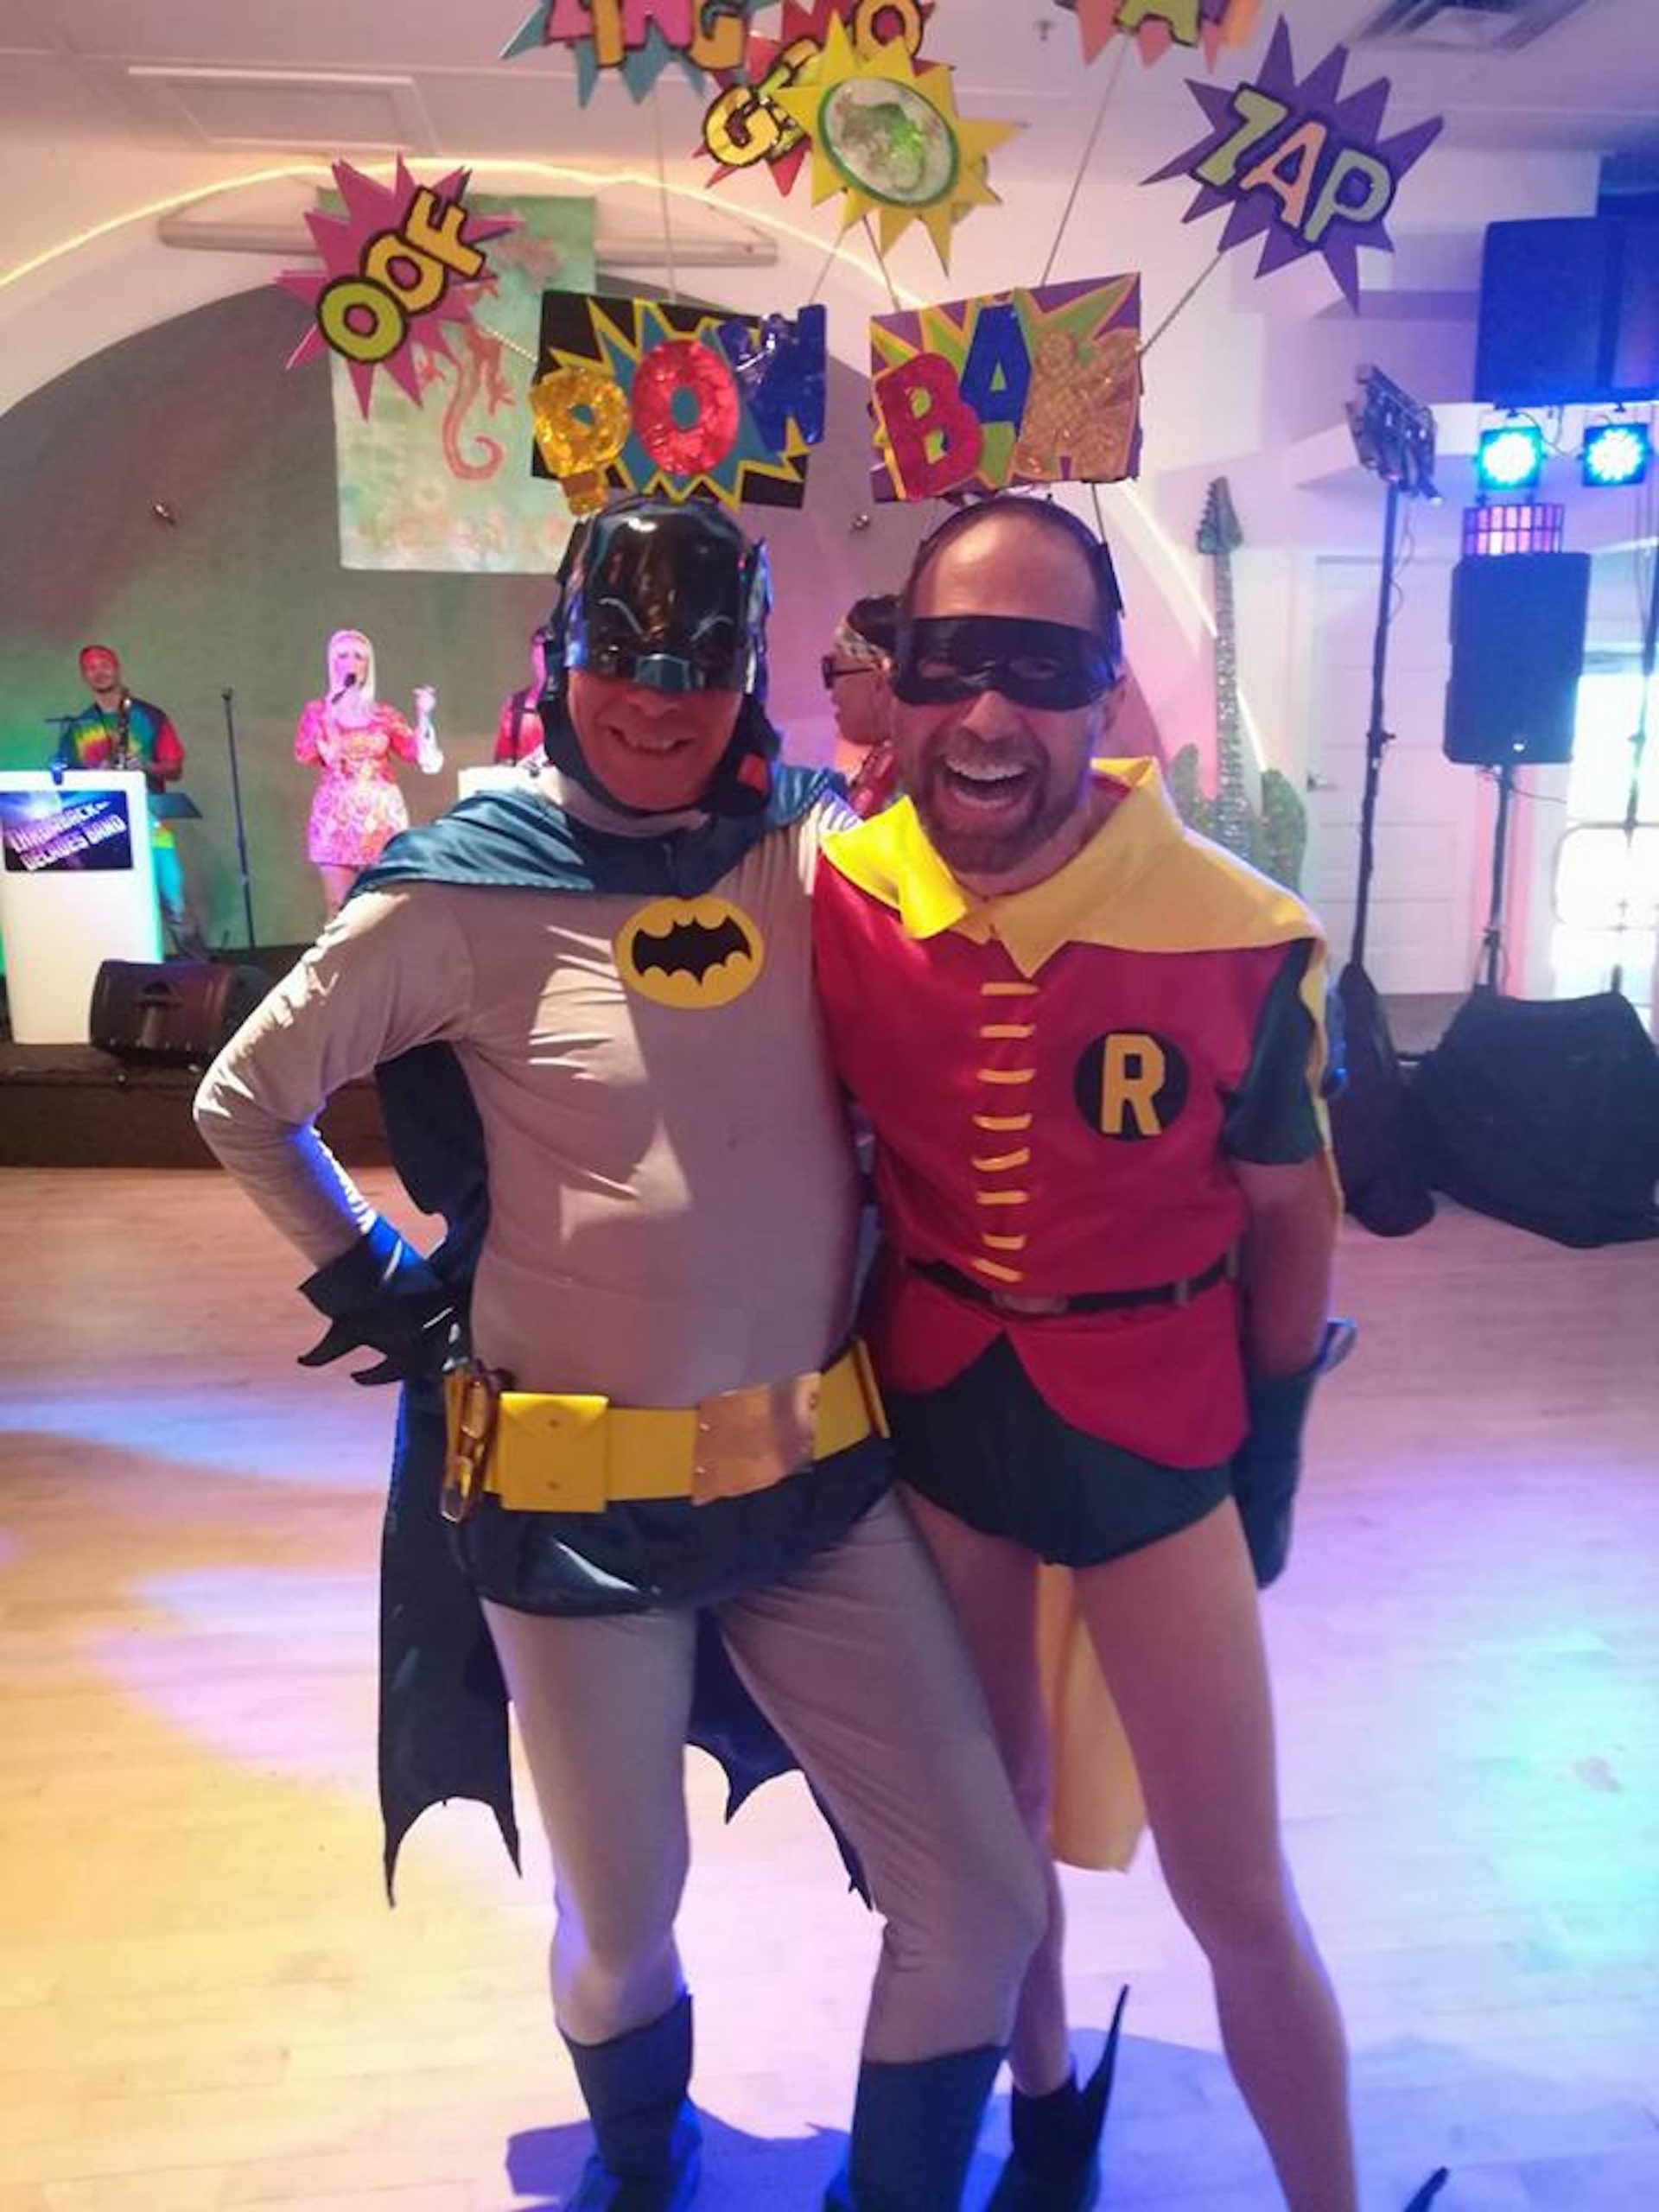 Two men in Batman and Robin costumes smile at the camera